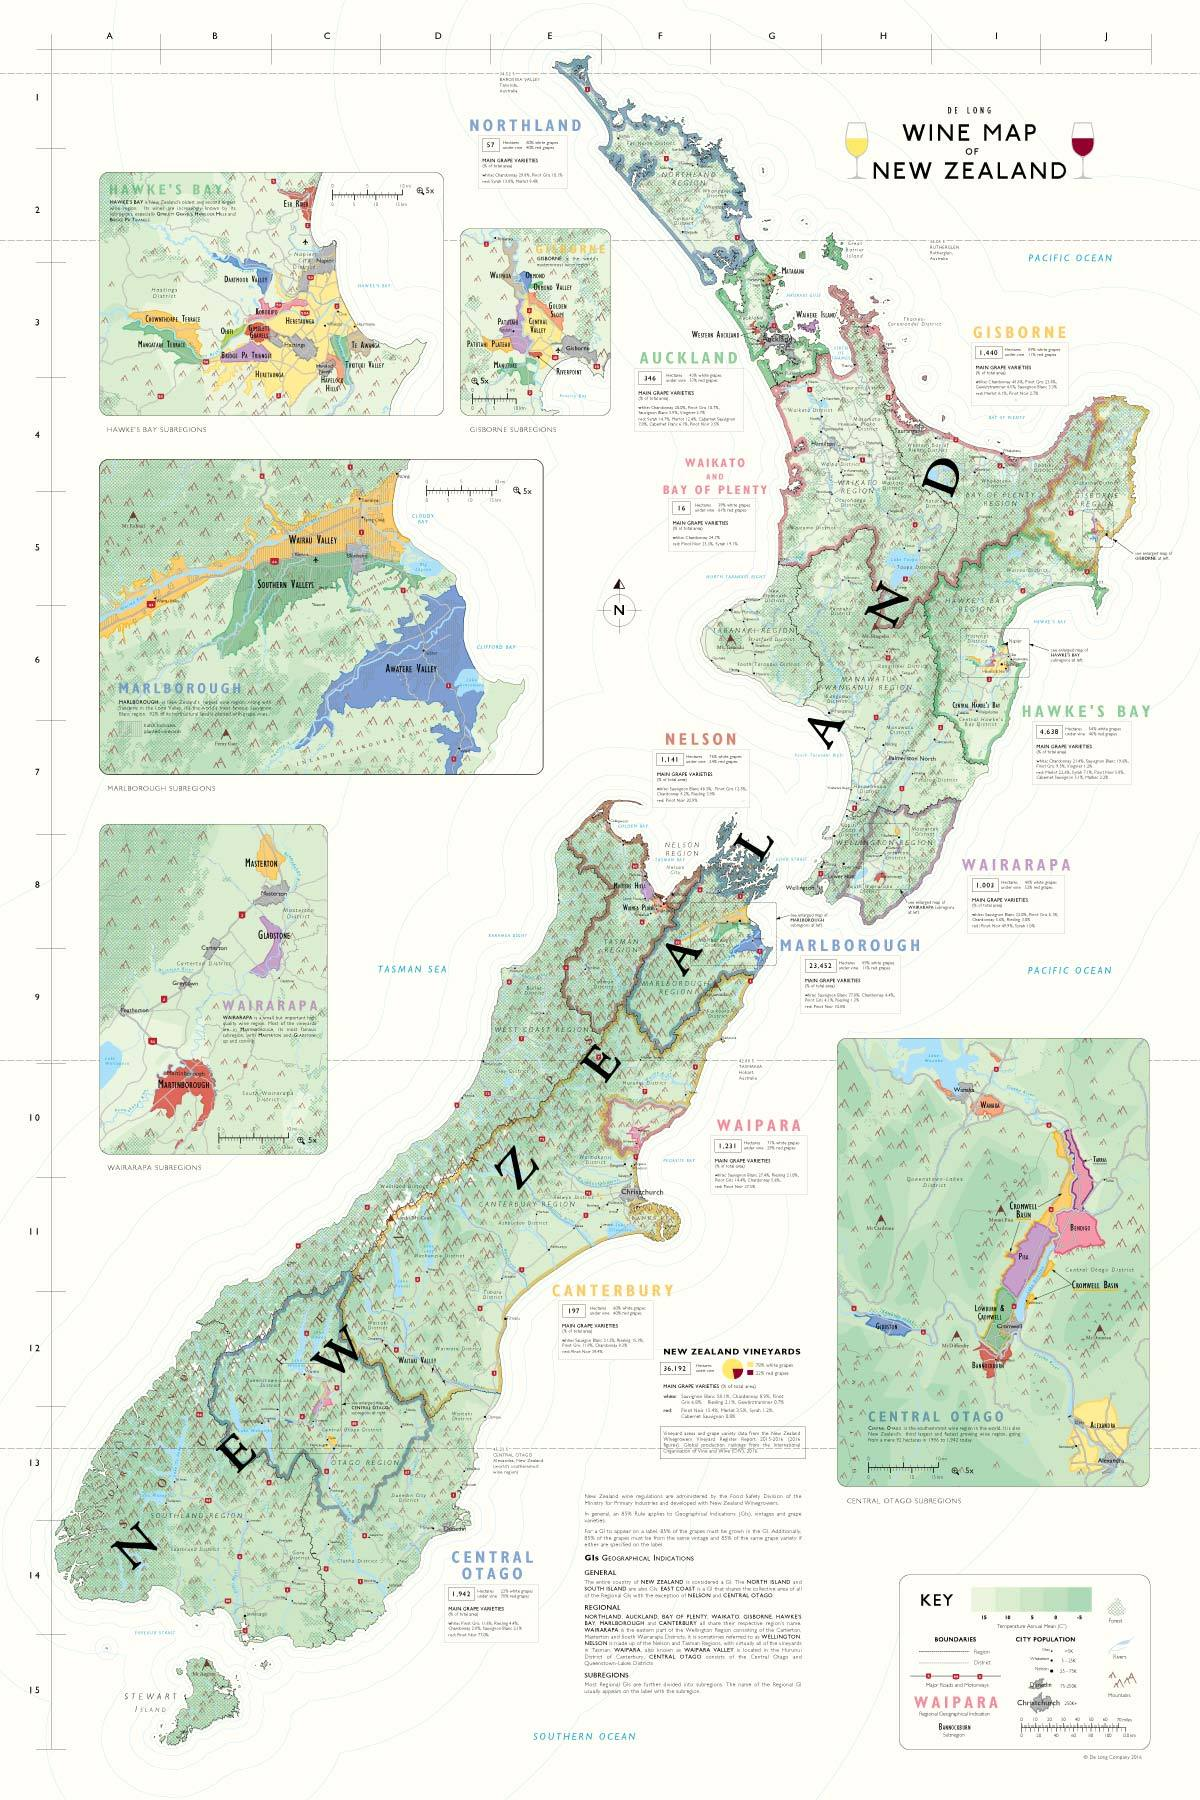 New Zealand Map In World.Wine Maps Of The World De Long